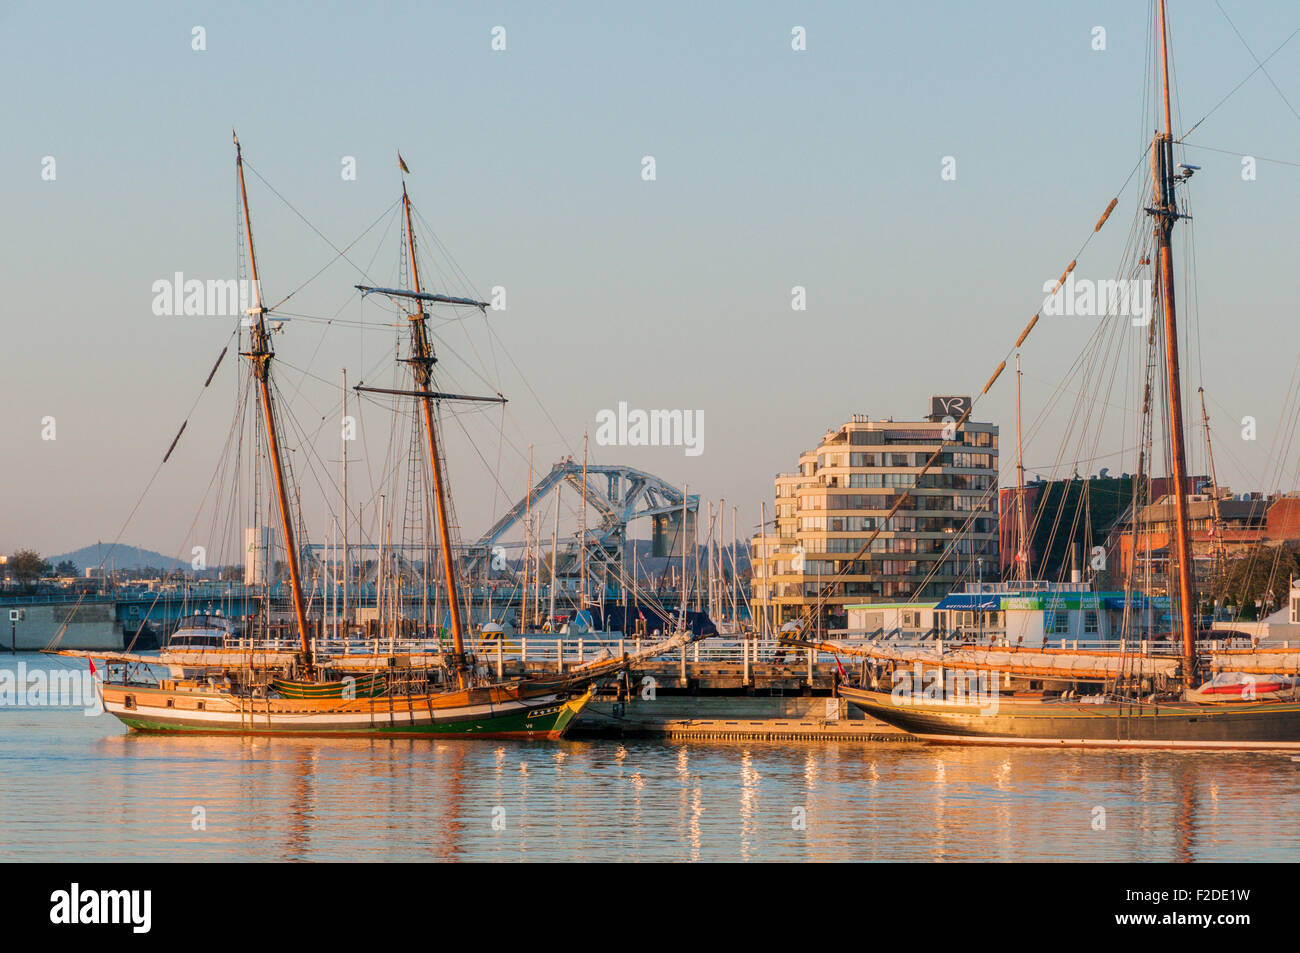 Tall ships, Inner harbour,  Victoria, British Columbia, Canada - Stock Image